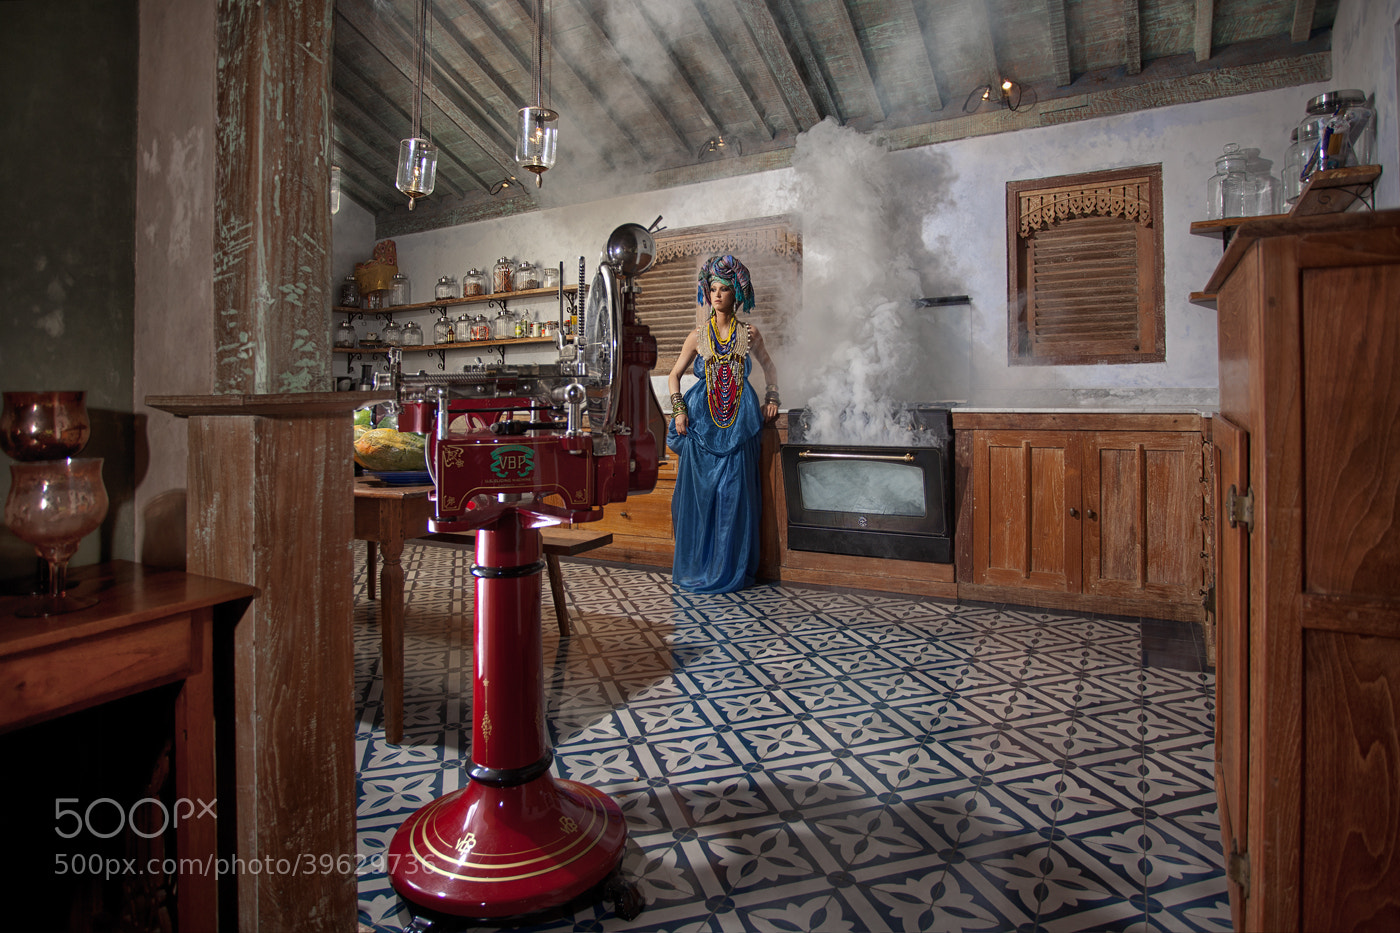 Photograph Ethnic 1 by Kirill Utevsky on 500px